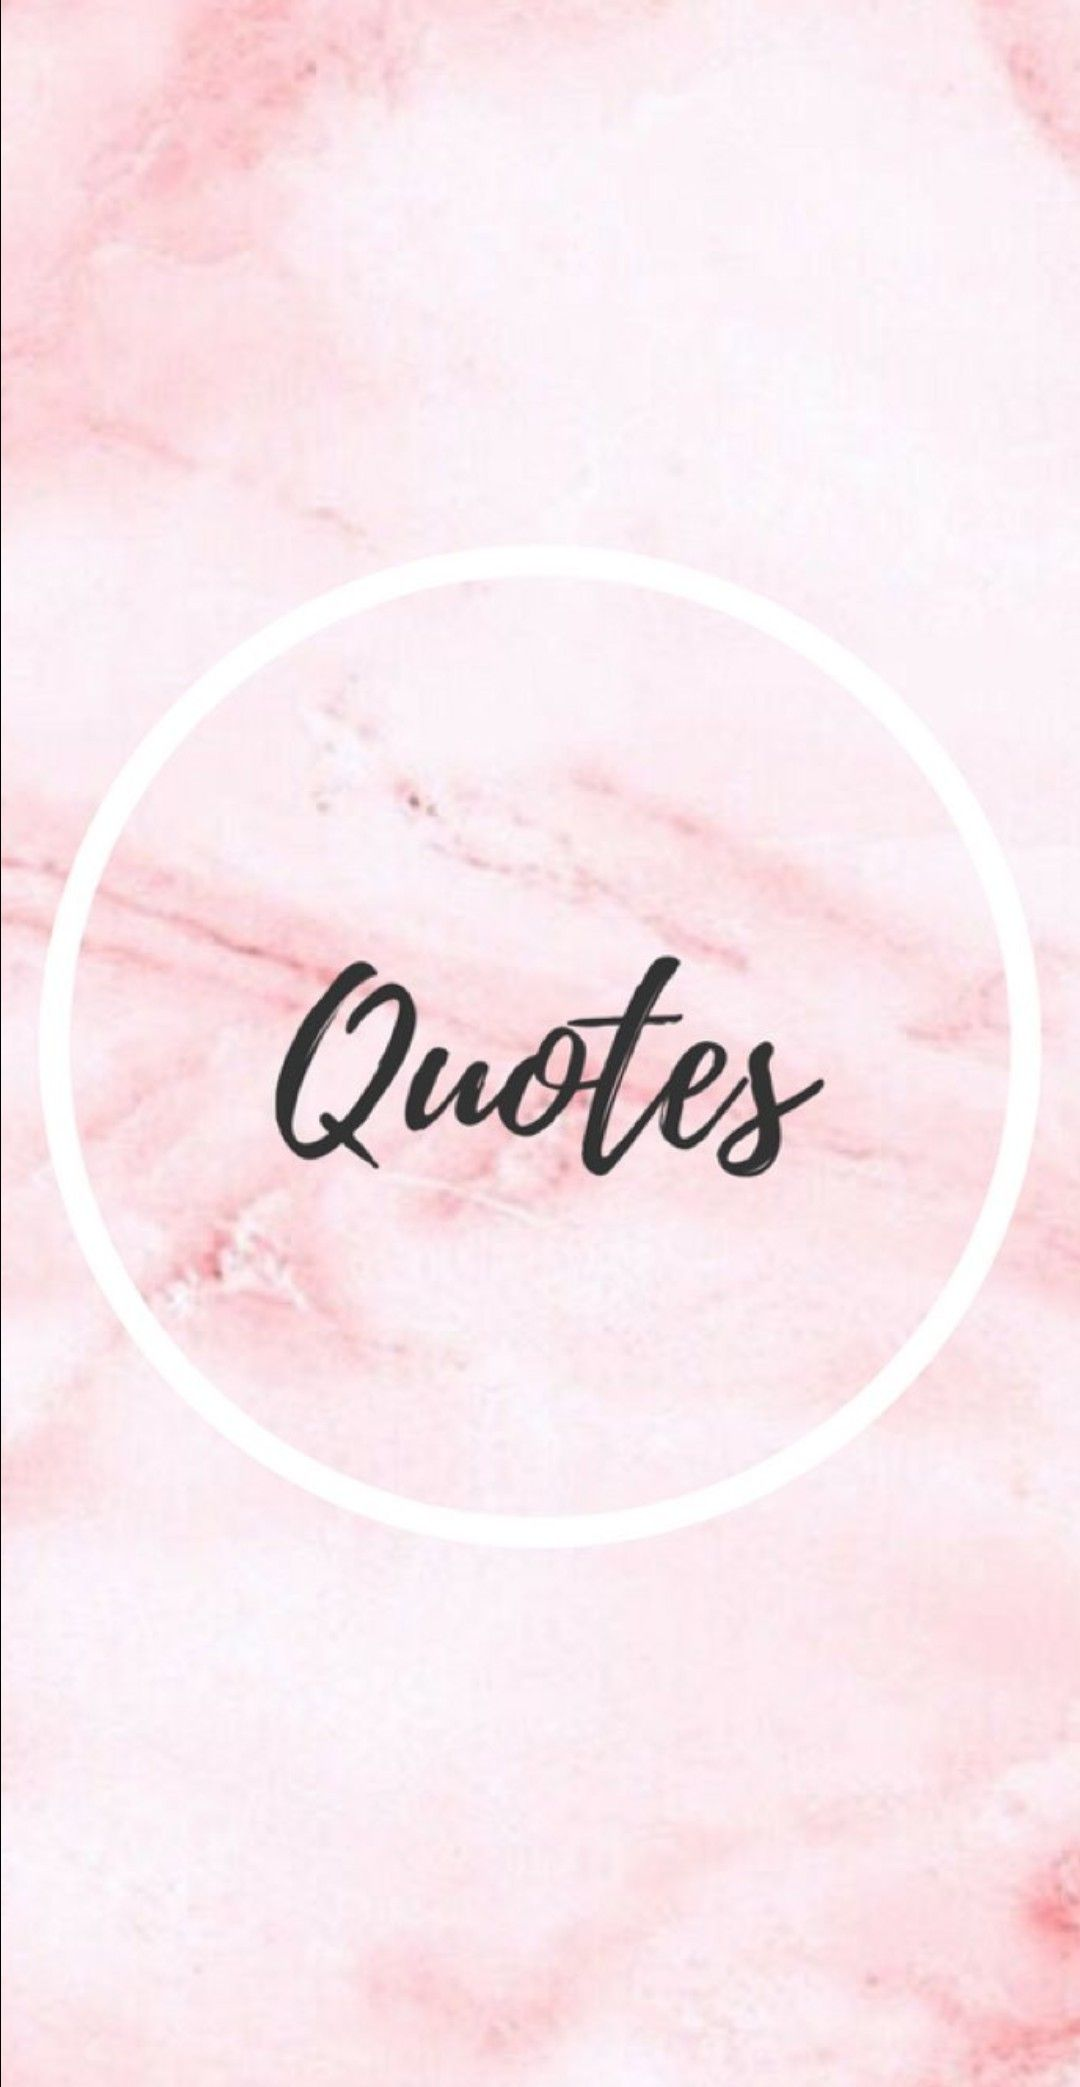 Quotes Instagram icons, Instagram highlight icons